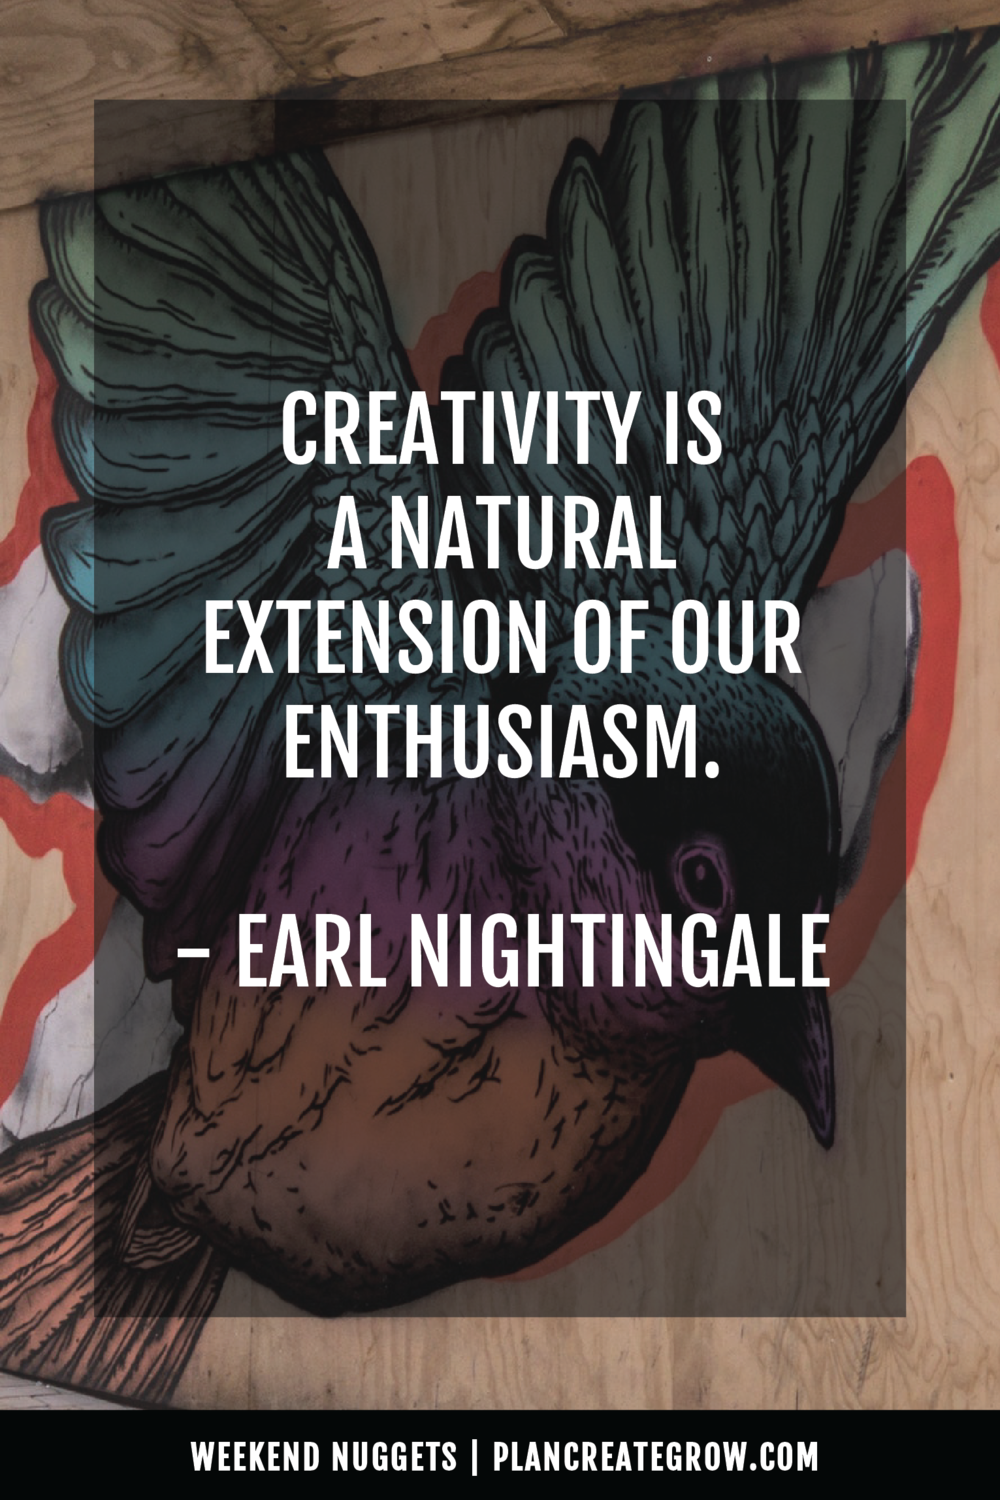 """Creativity is a natural extension of our enthusiasm."" - Earl Nightingale  This image forms part of a series called Weekend Nuggets - a collection of quotes and ideas curated to delight and inspire - shared each weekend. For more, visit plancreategrow.com/weekend-nuggets."